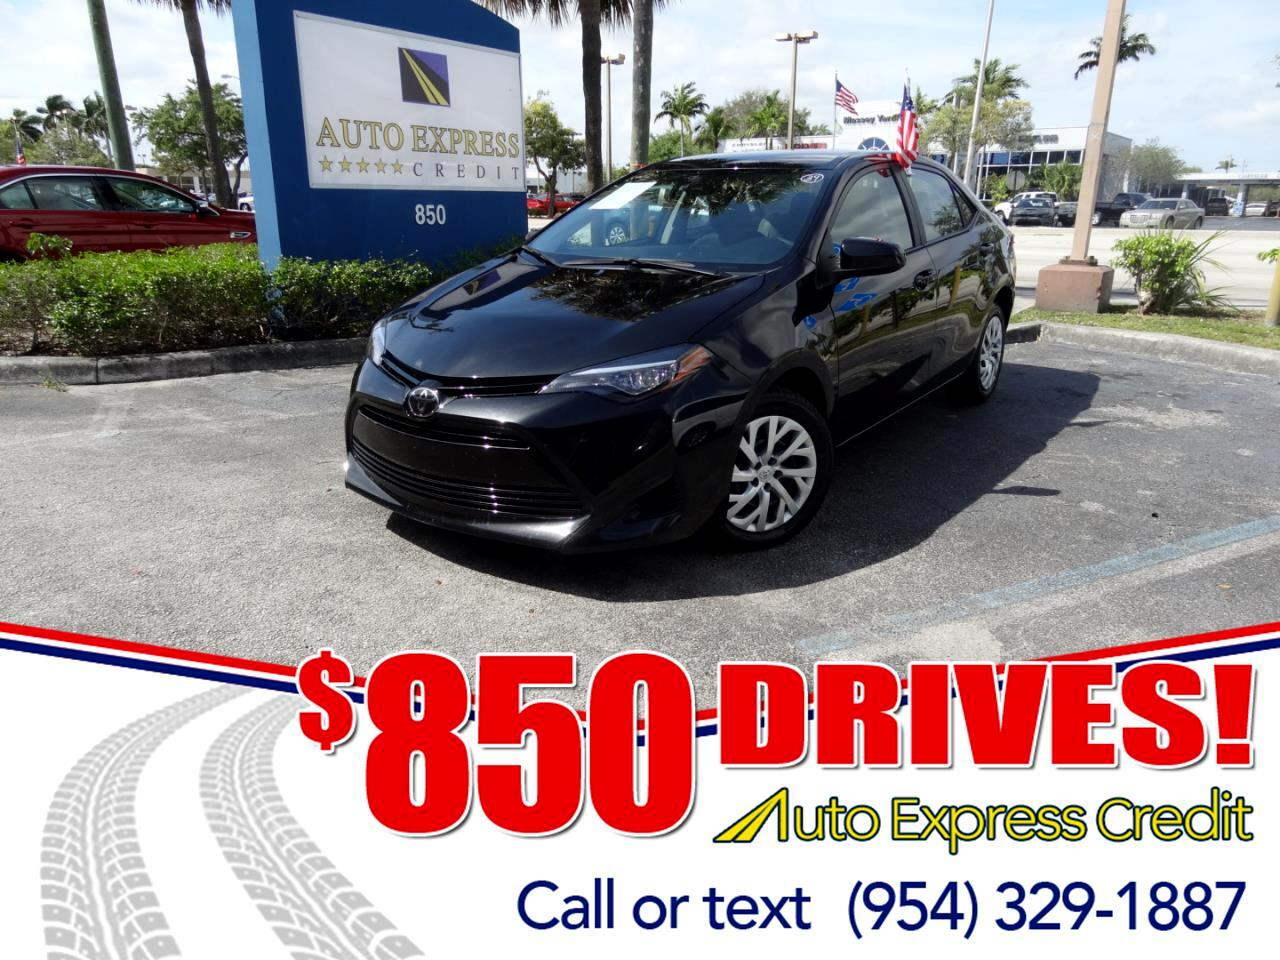 Used 2018 Toyota Corolla For Sale In Plantation FL 33317 Auto Express Credit